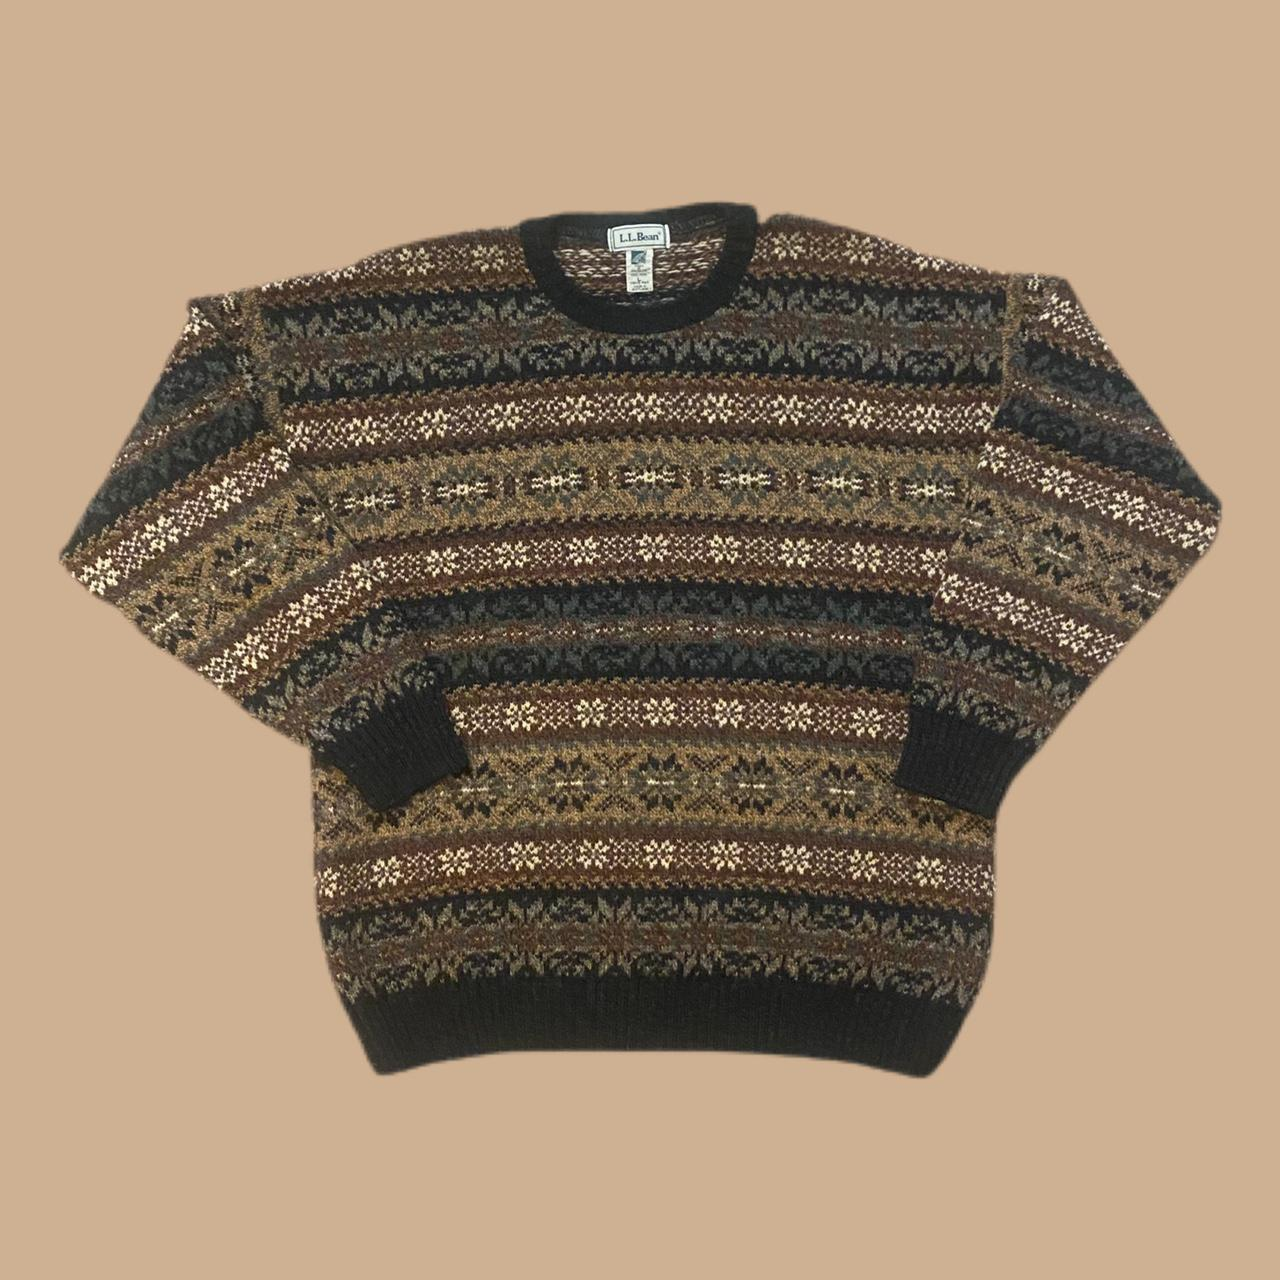 Product Image 1 - Vintage LL Bean Cosby sweater!  Measurements: p2p